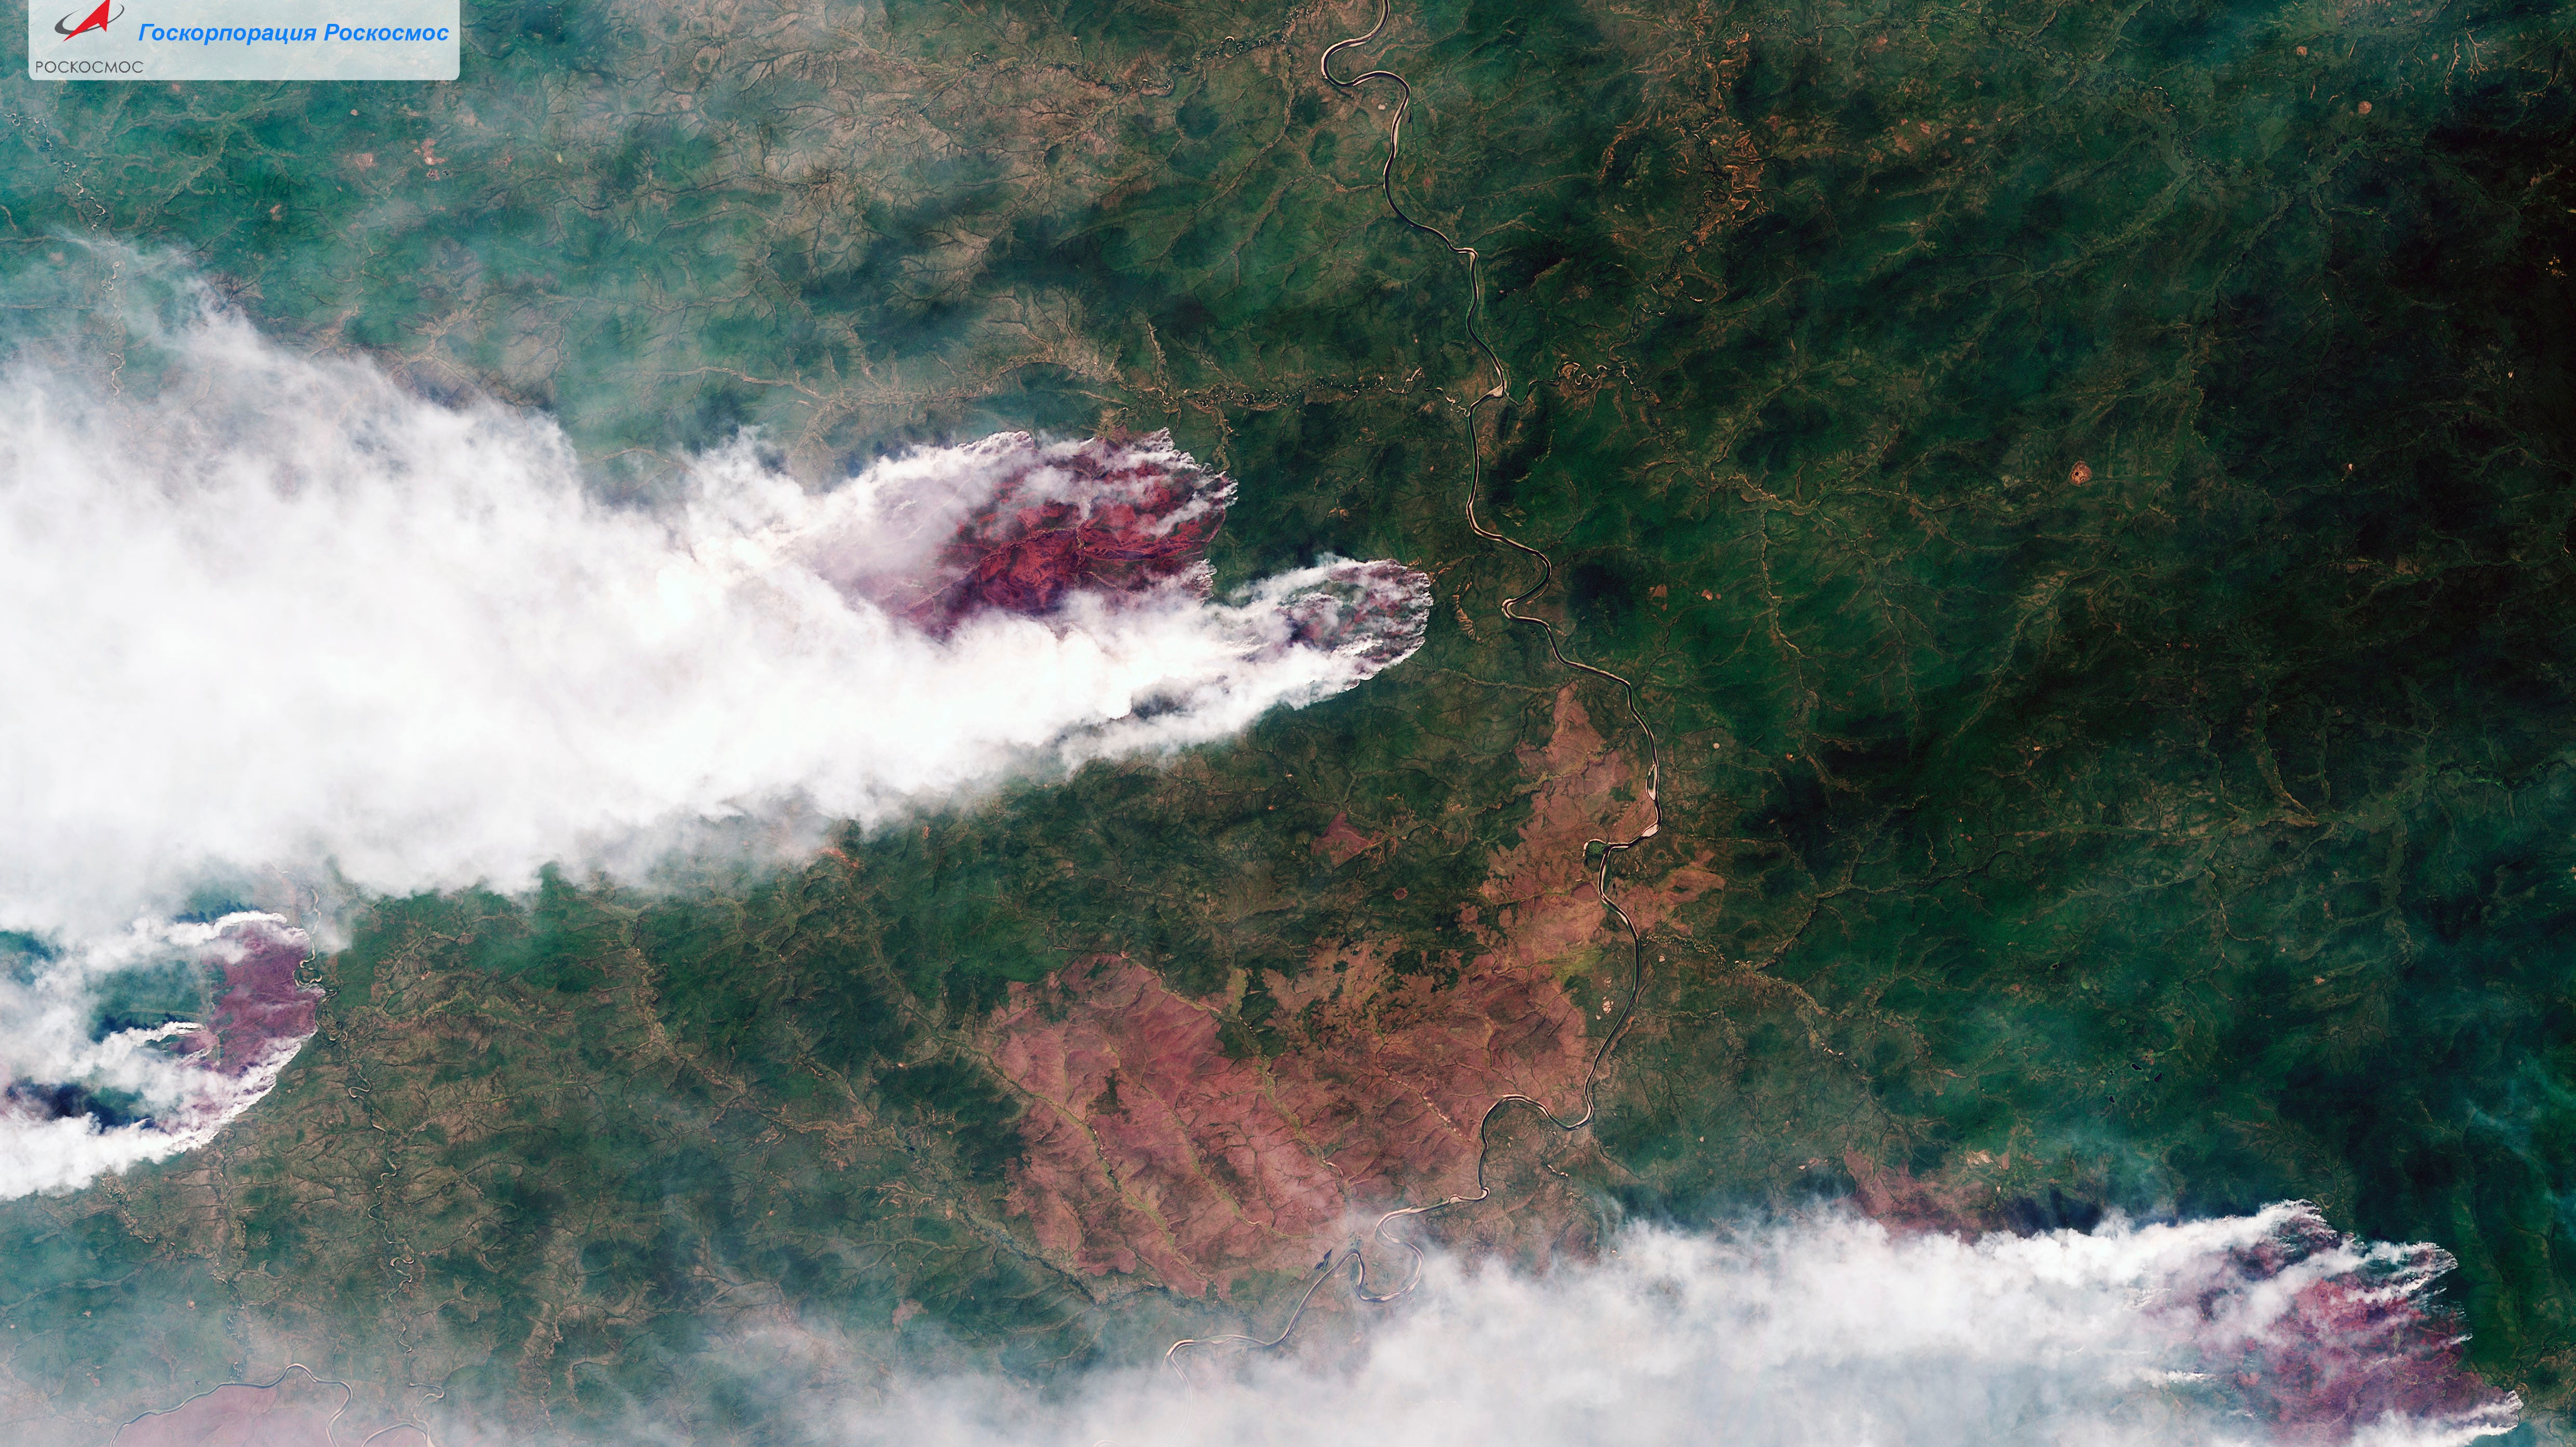 """Over 15 Thousand Square Miles of Siberia are on Fire and it's """"a Global Ecological Catastrophe"""""""